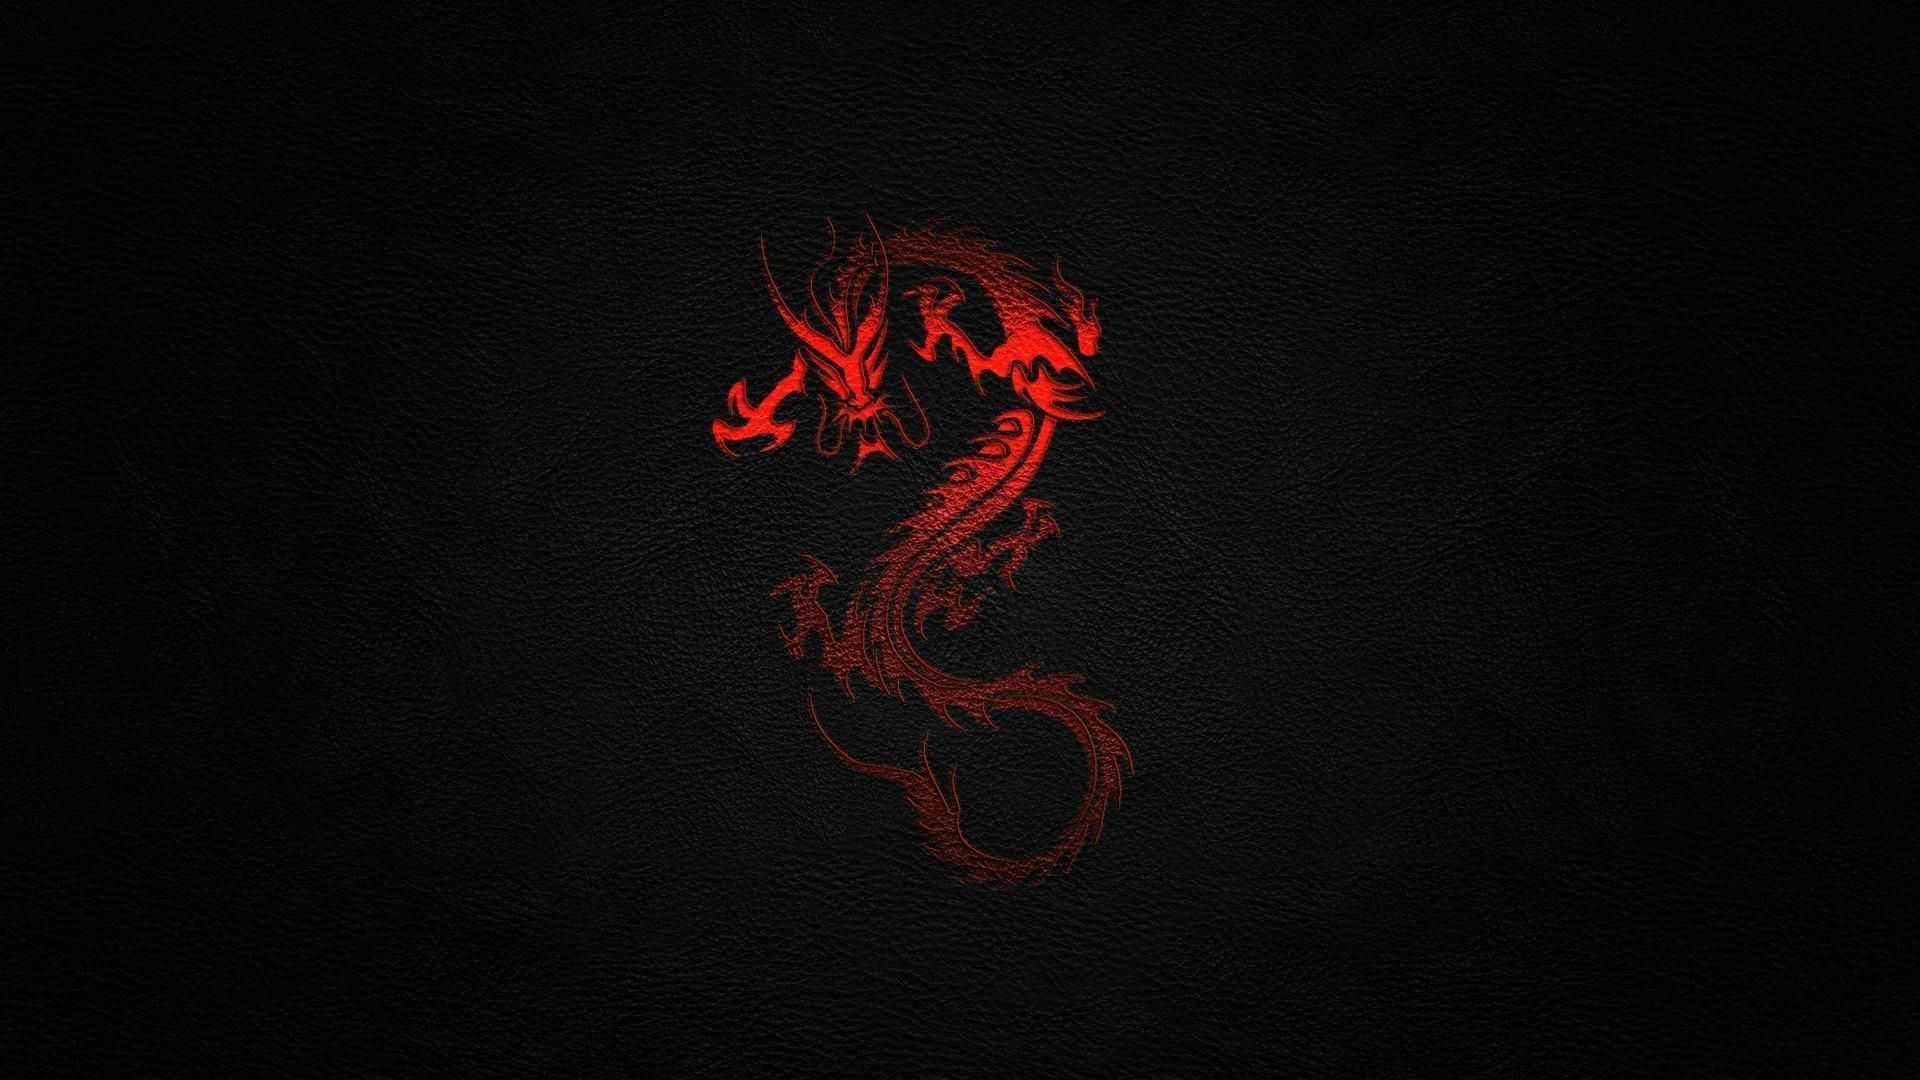 10 Latest Red And Black Dragon Wallpaper Full Hd 1080p For Pc Background Dragon Wallpaper Iphone Red Dragon Red Wallpaper